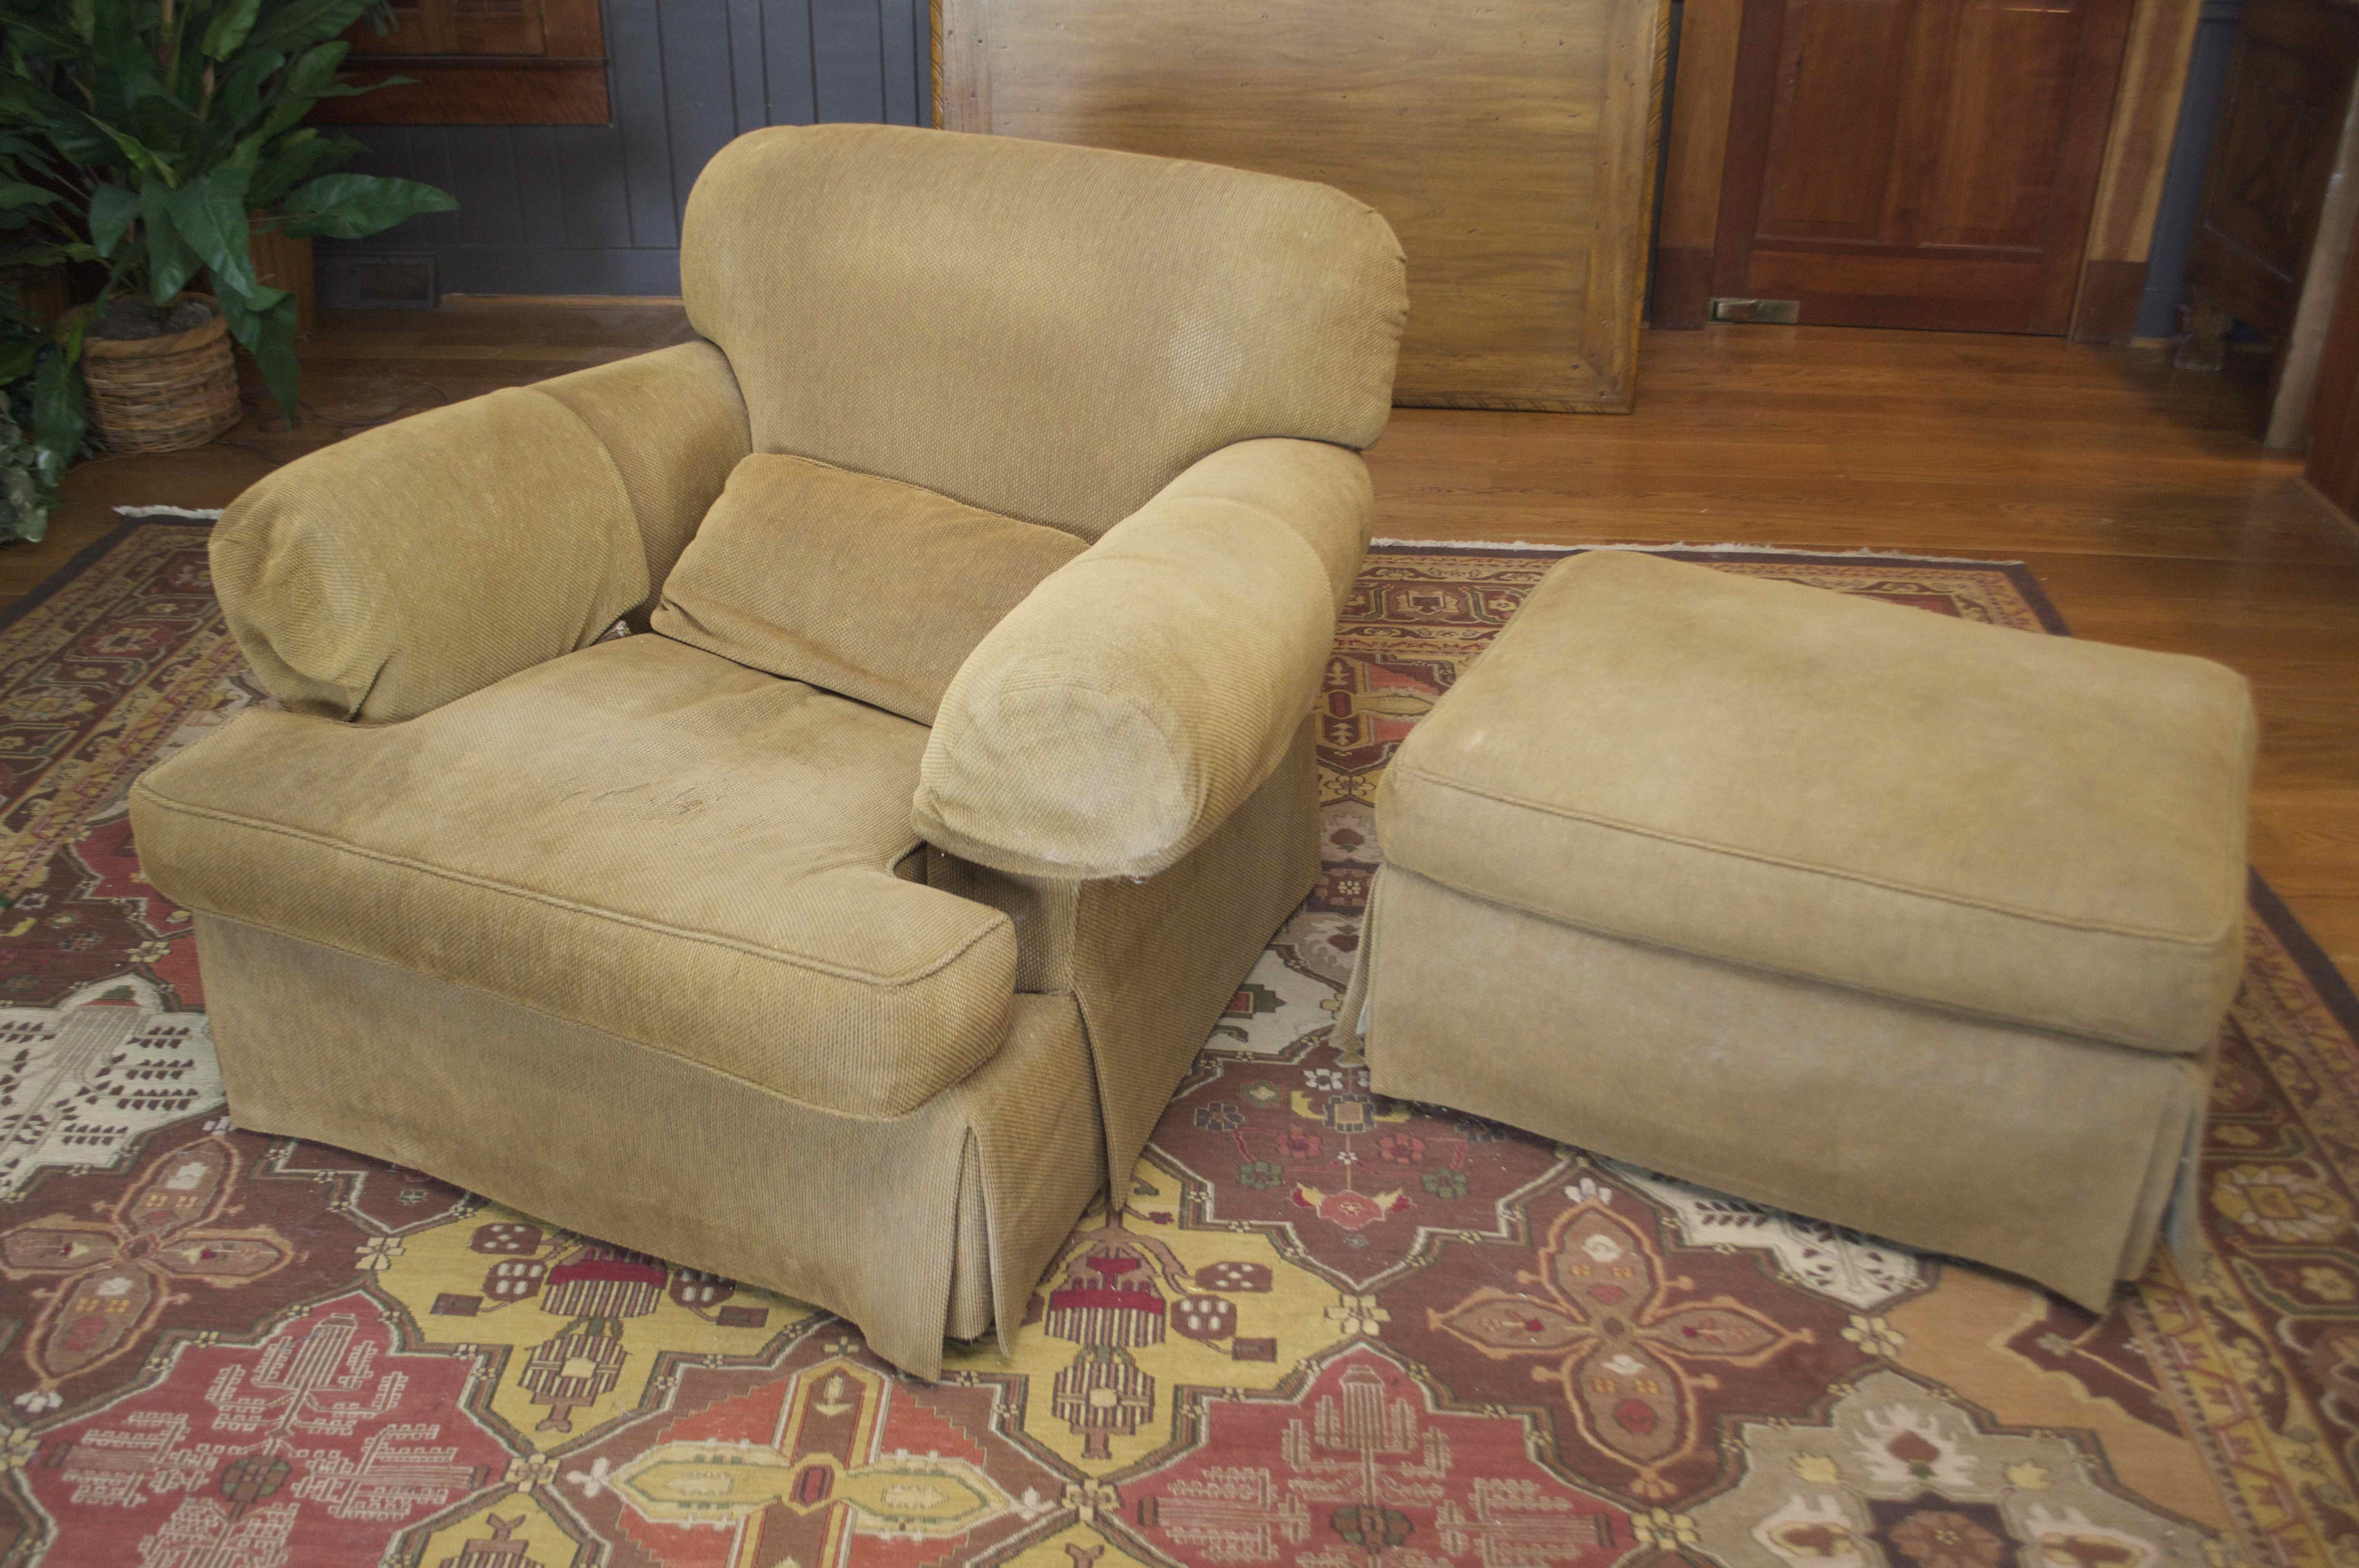 Overstuffed Chair And Ottoman By Baker Furniture ...